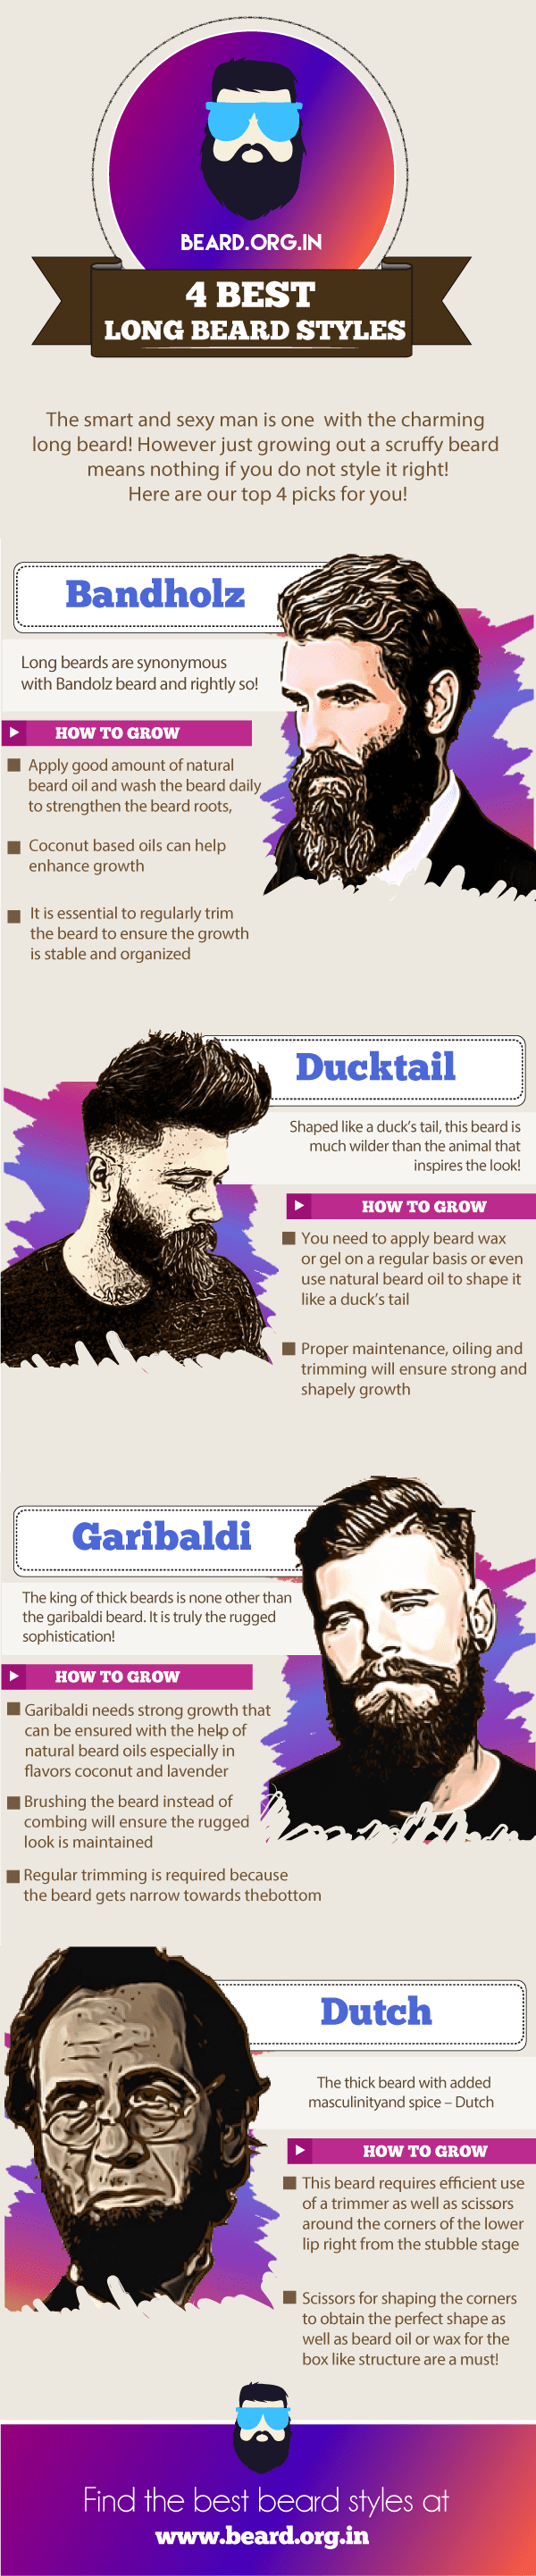 4 best long beard styles for men 2017